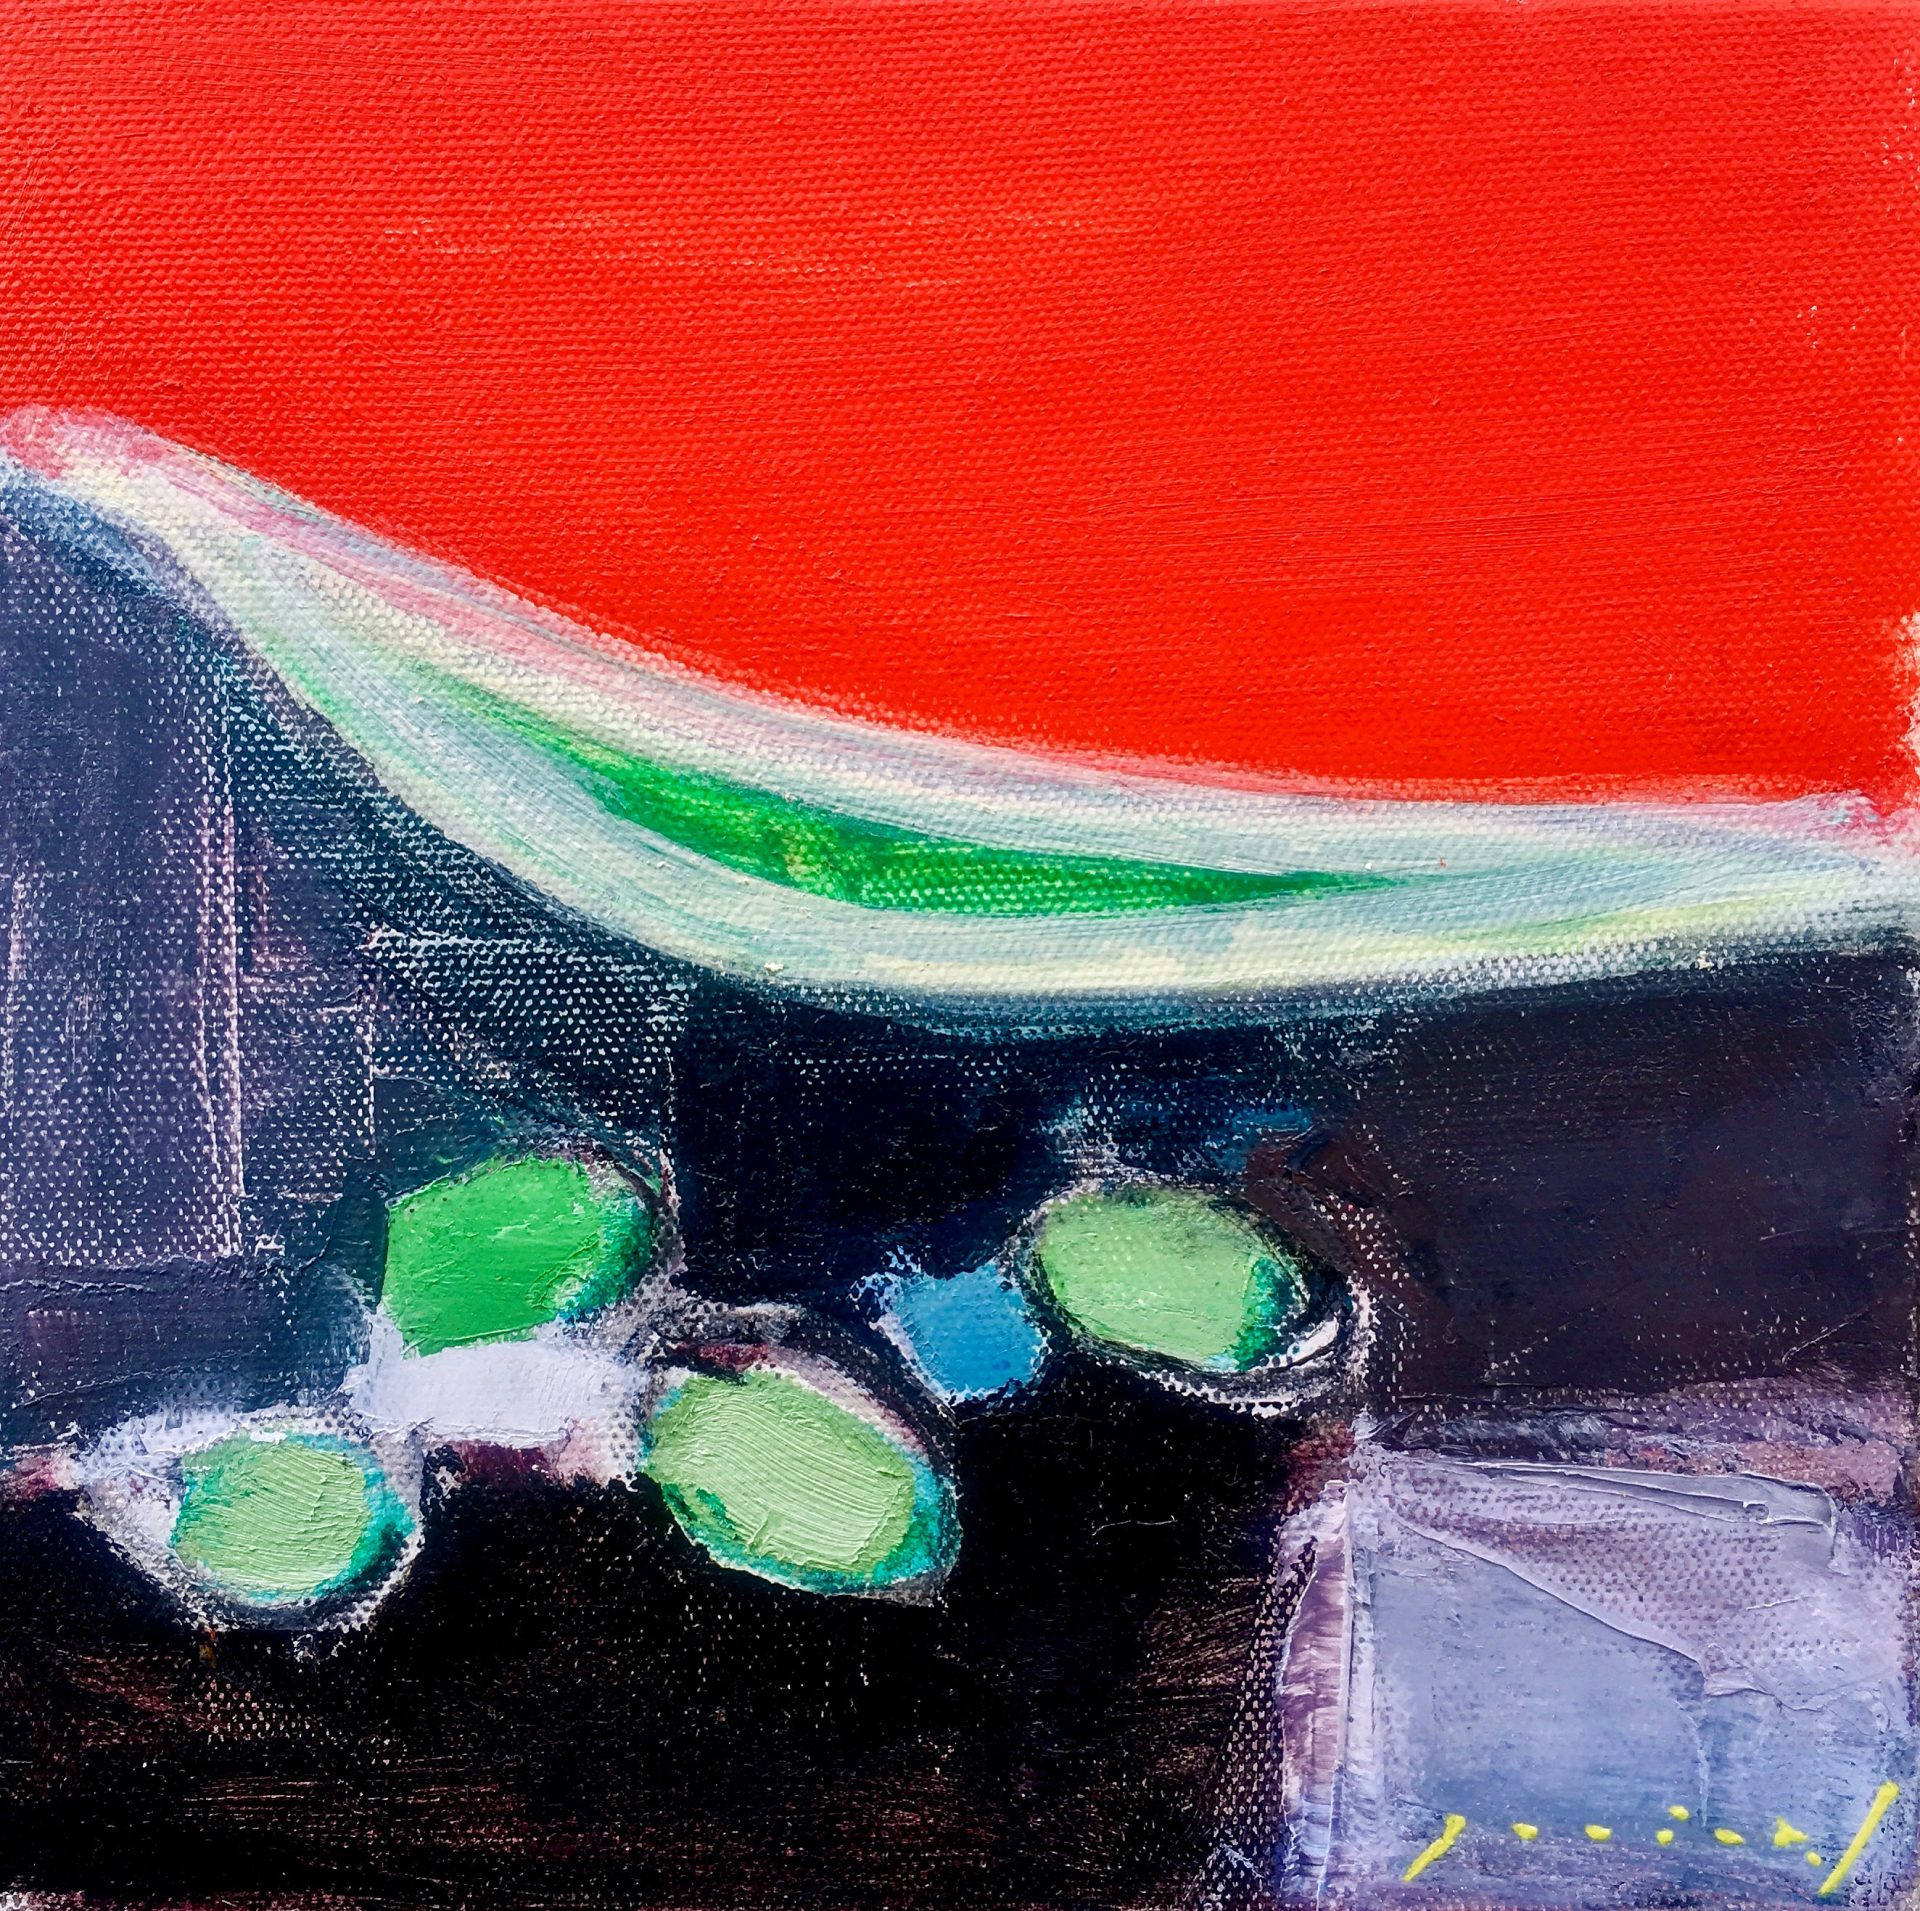 「soramane」oil on canvas20×20(cm)¥80,000